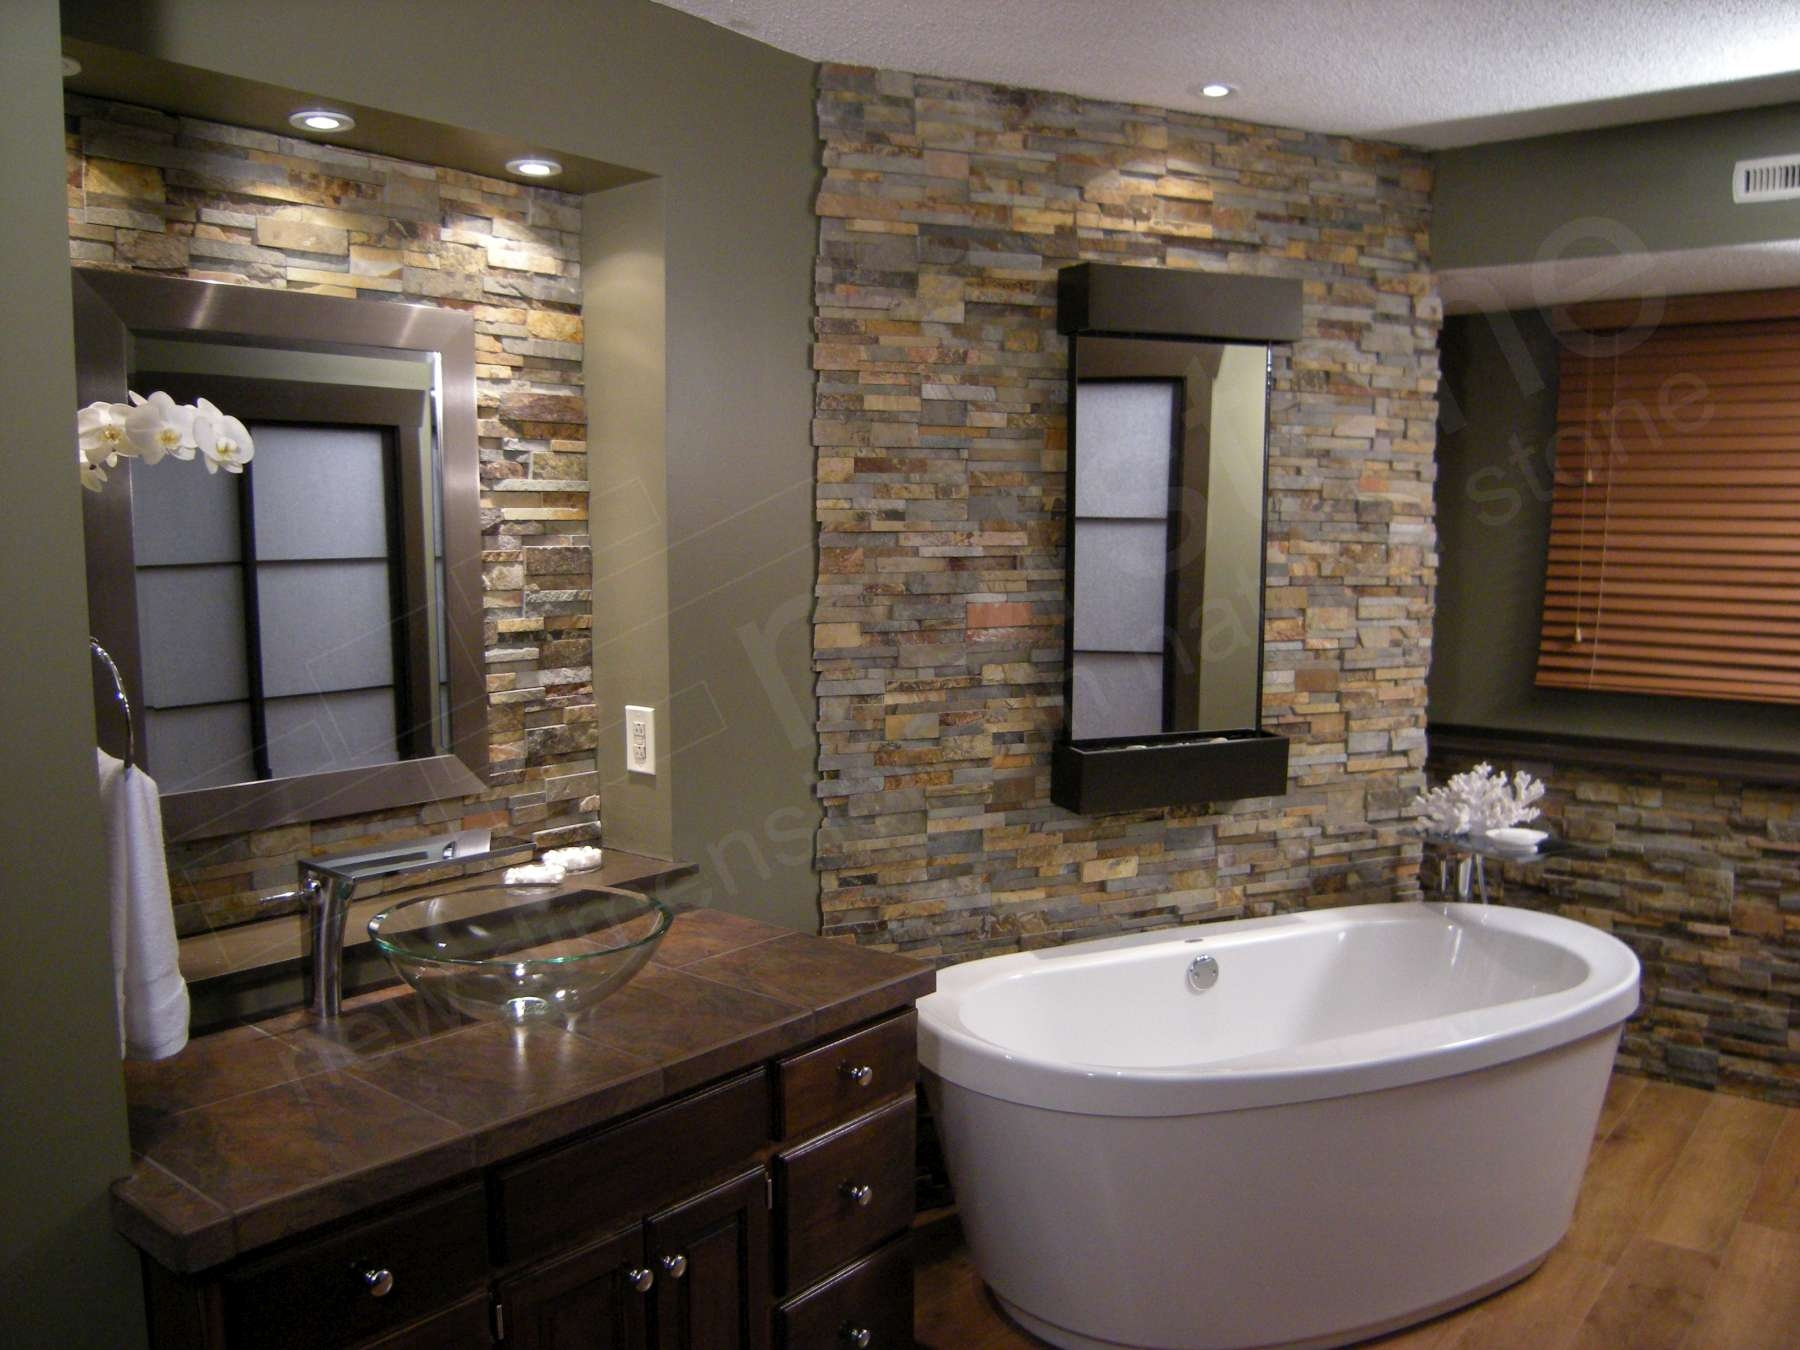 stone-wall   Home Designs Project